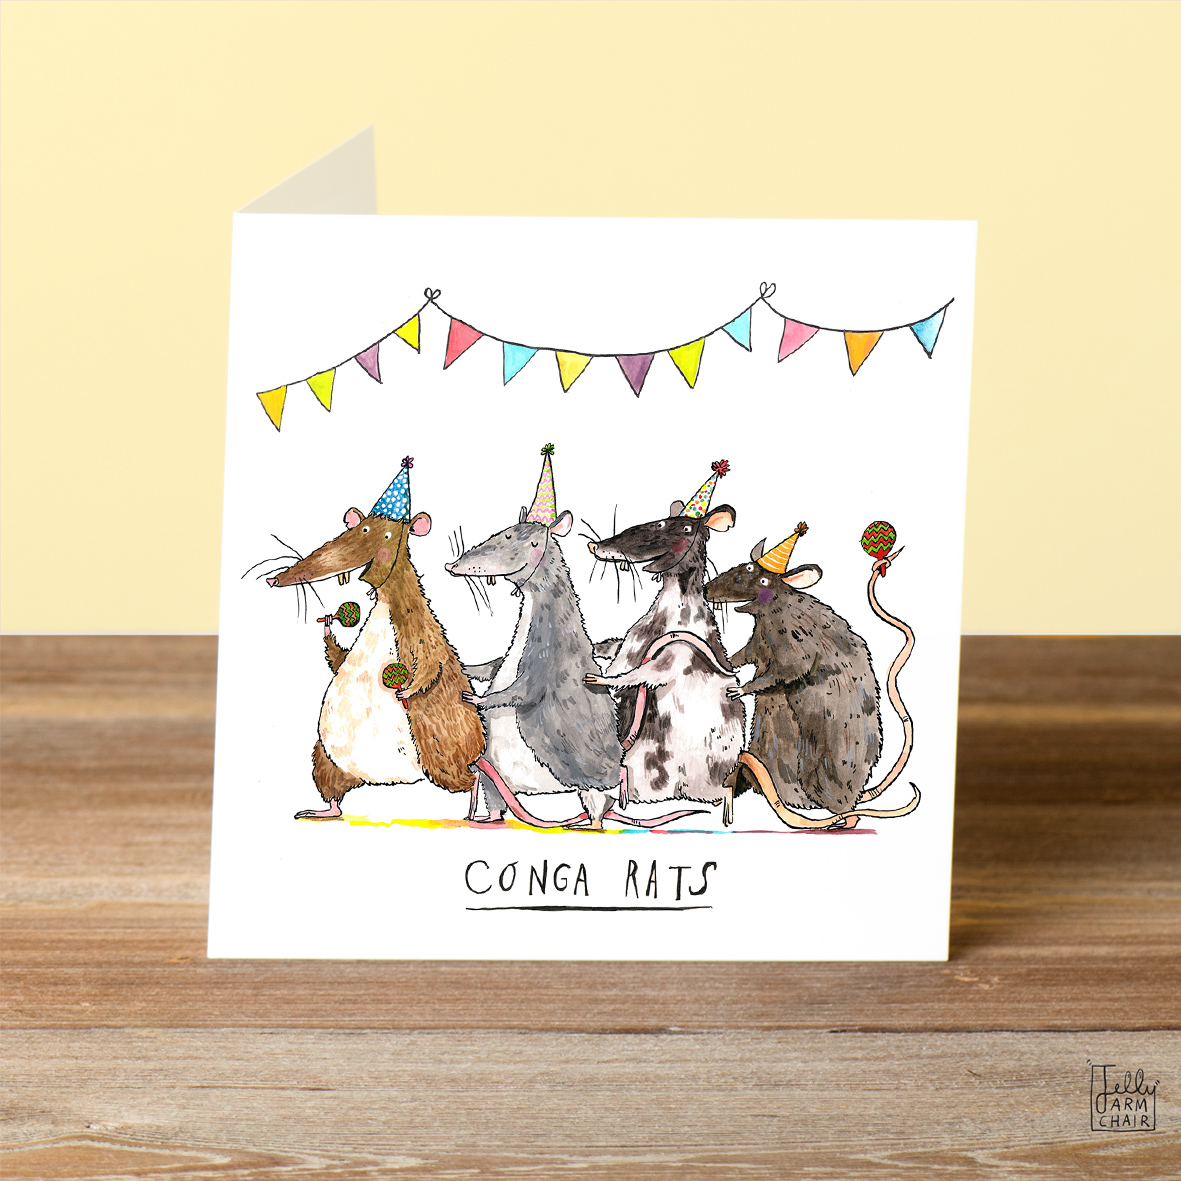 Conga-Rats_-Congratulations-greeting-card-for-any-event-with-rat-pun_FW02_OT